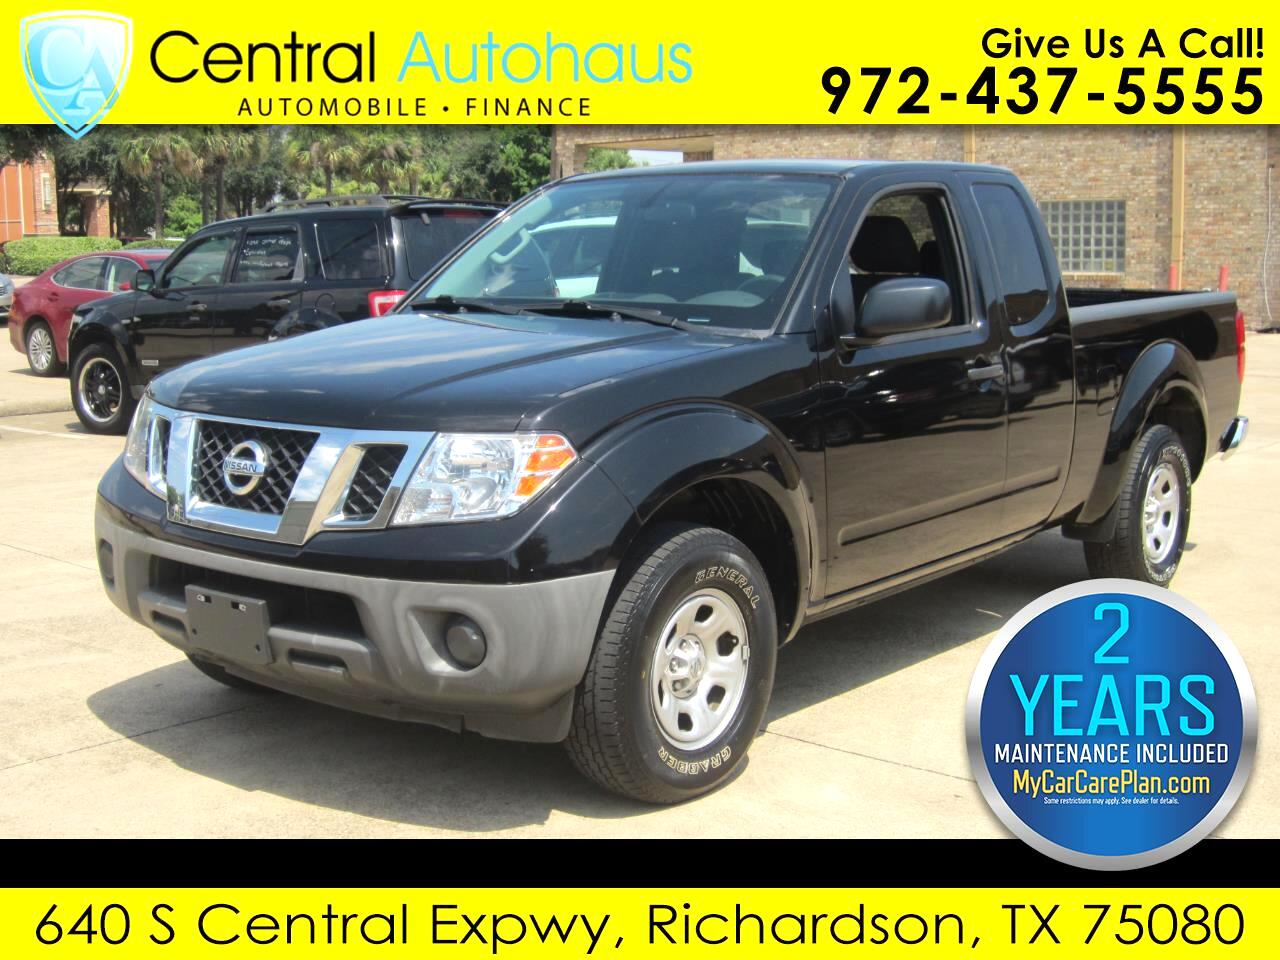 2016 Nissan Frontier 2WD King Cab Auto XE